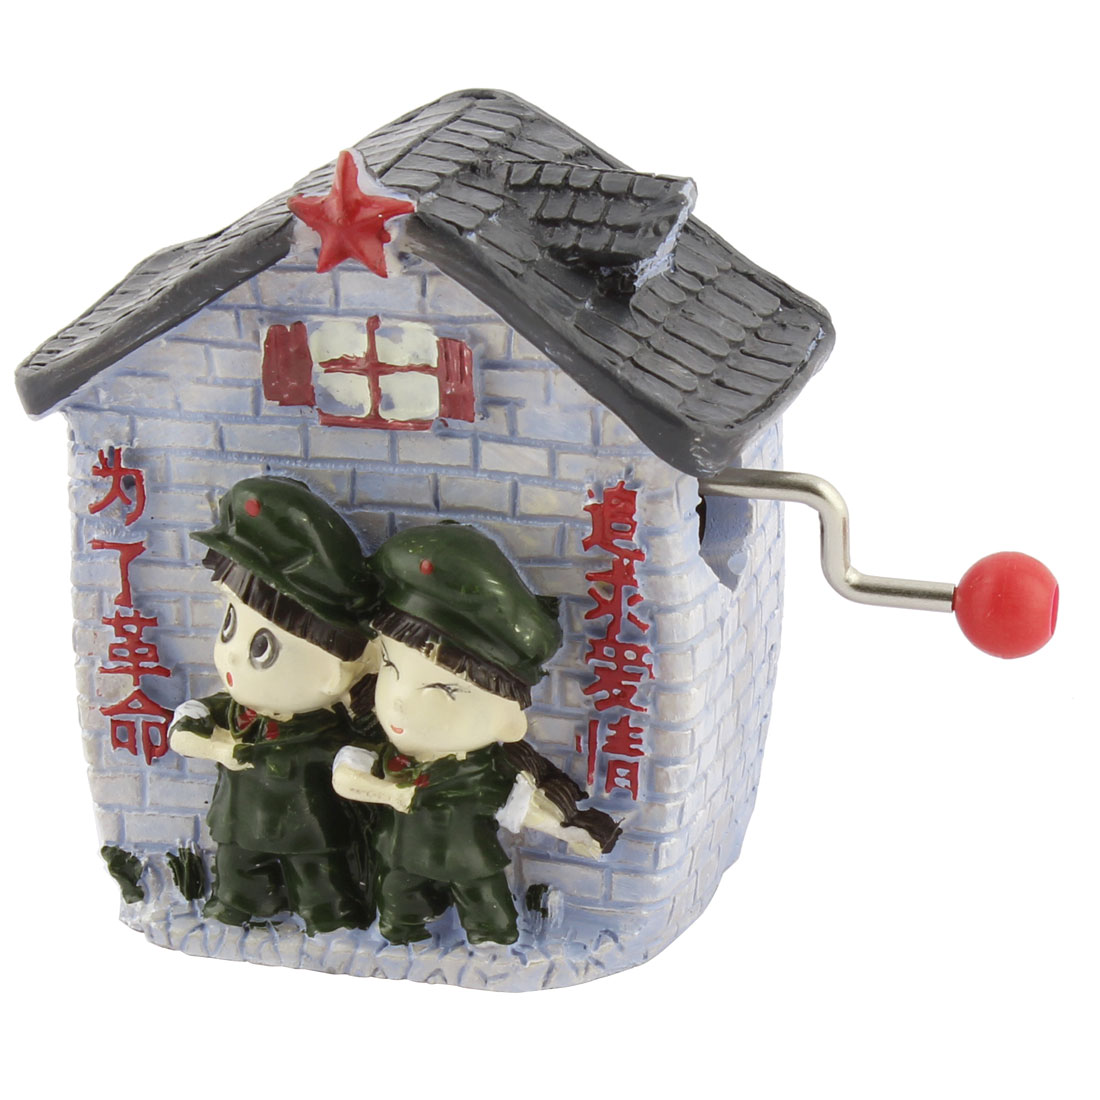 Resin House Shaped Hand-cranked Music Box Birthday Gift Ornament Multicolor